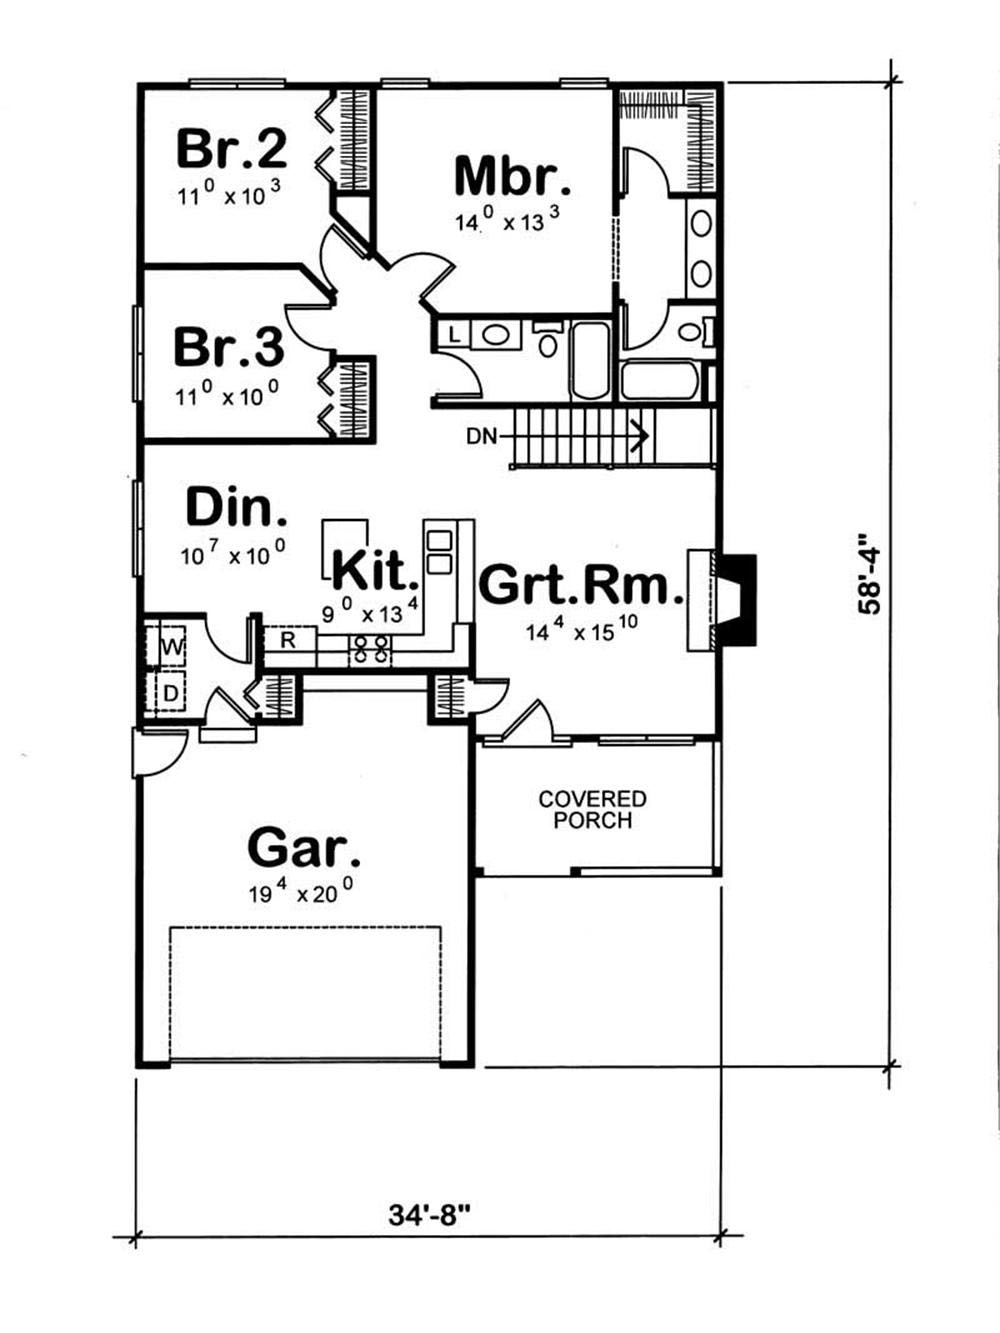 House plan 120 1058 3 bedroom 1311 sq ft bungalow for Square house plans